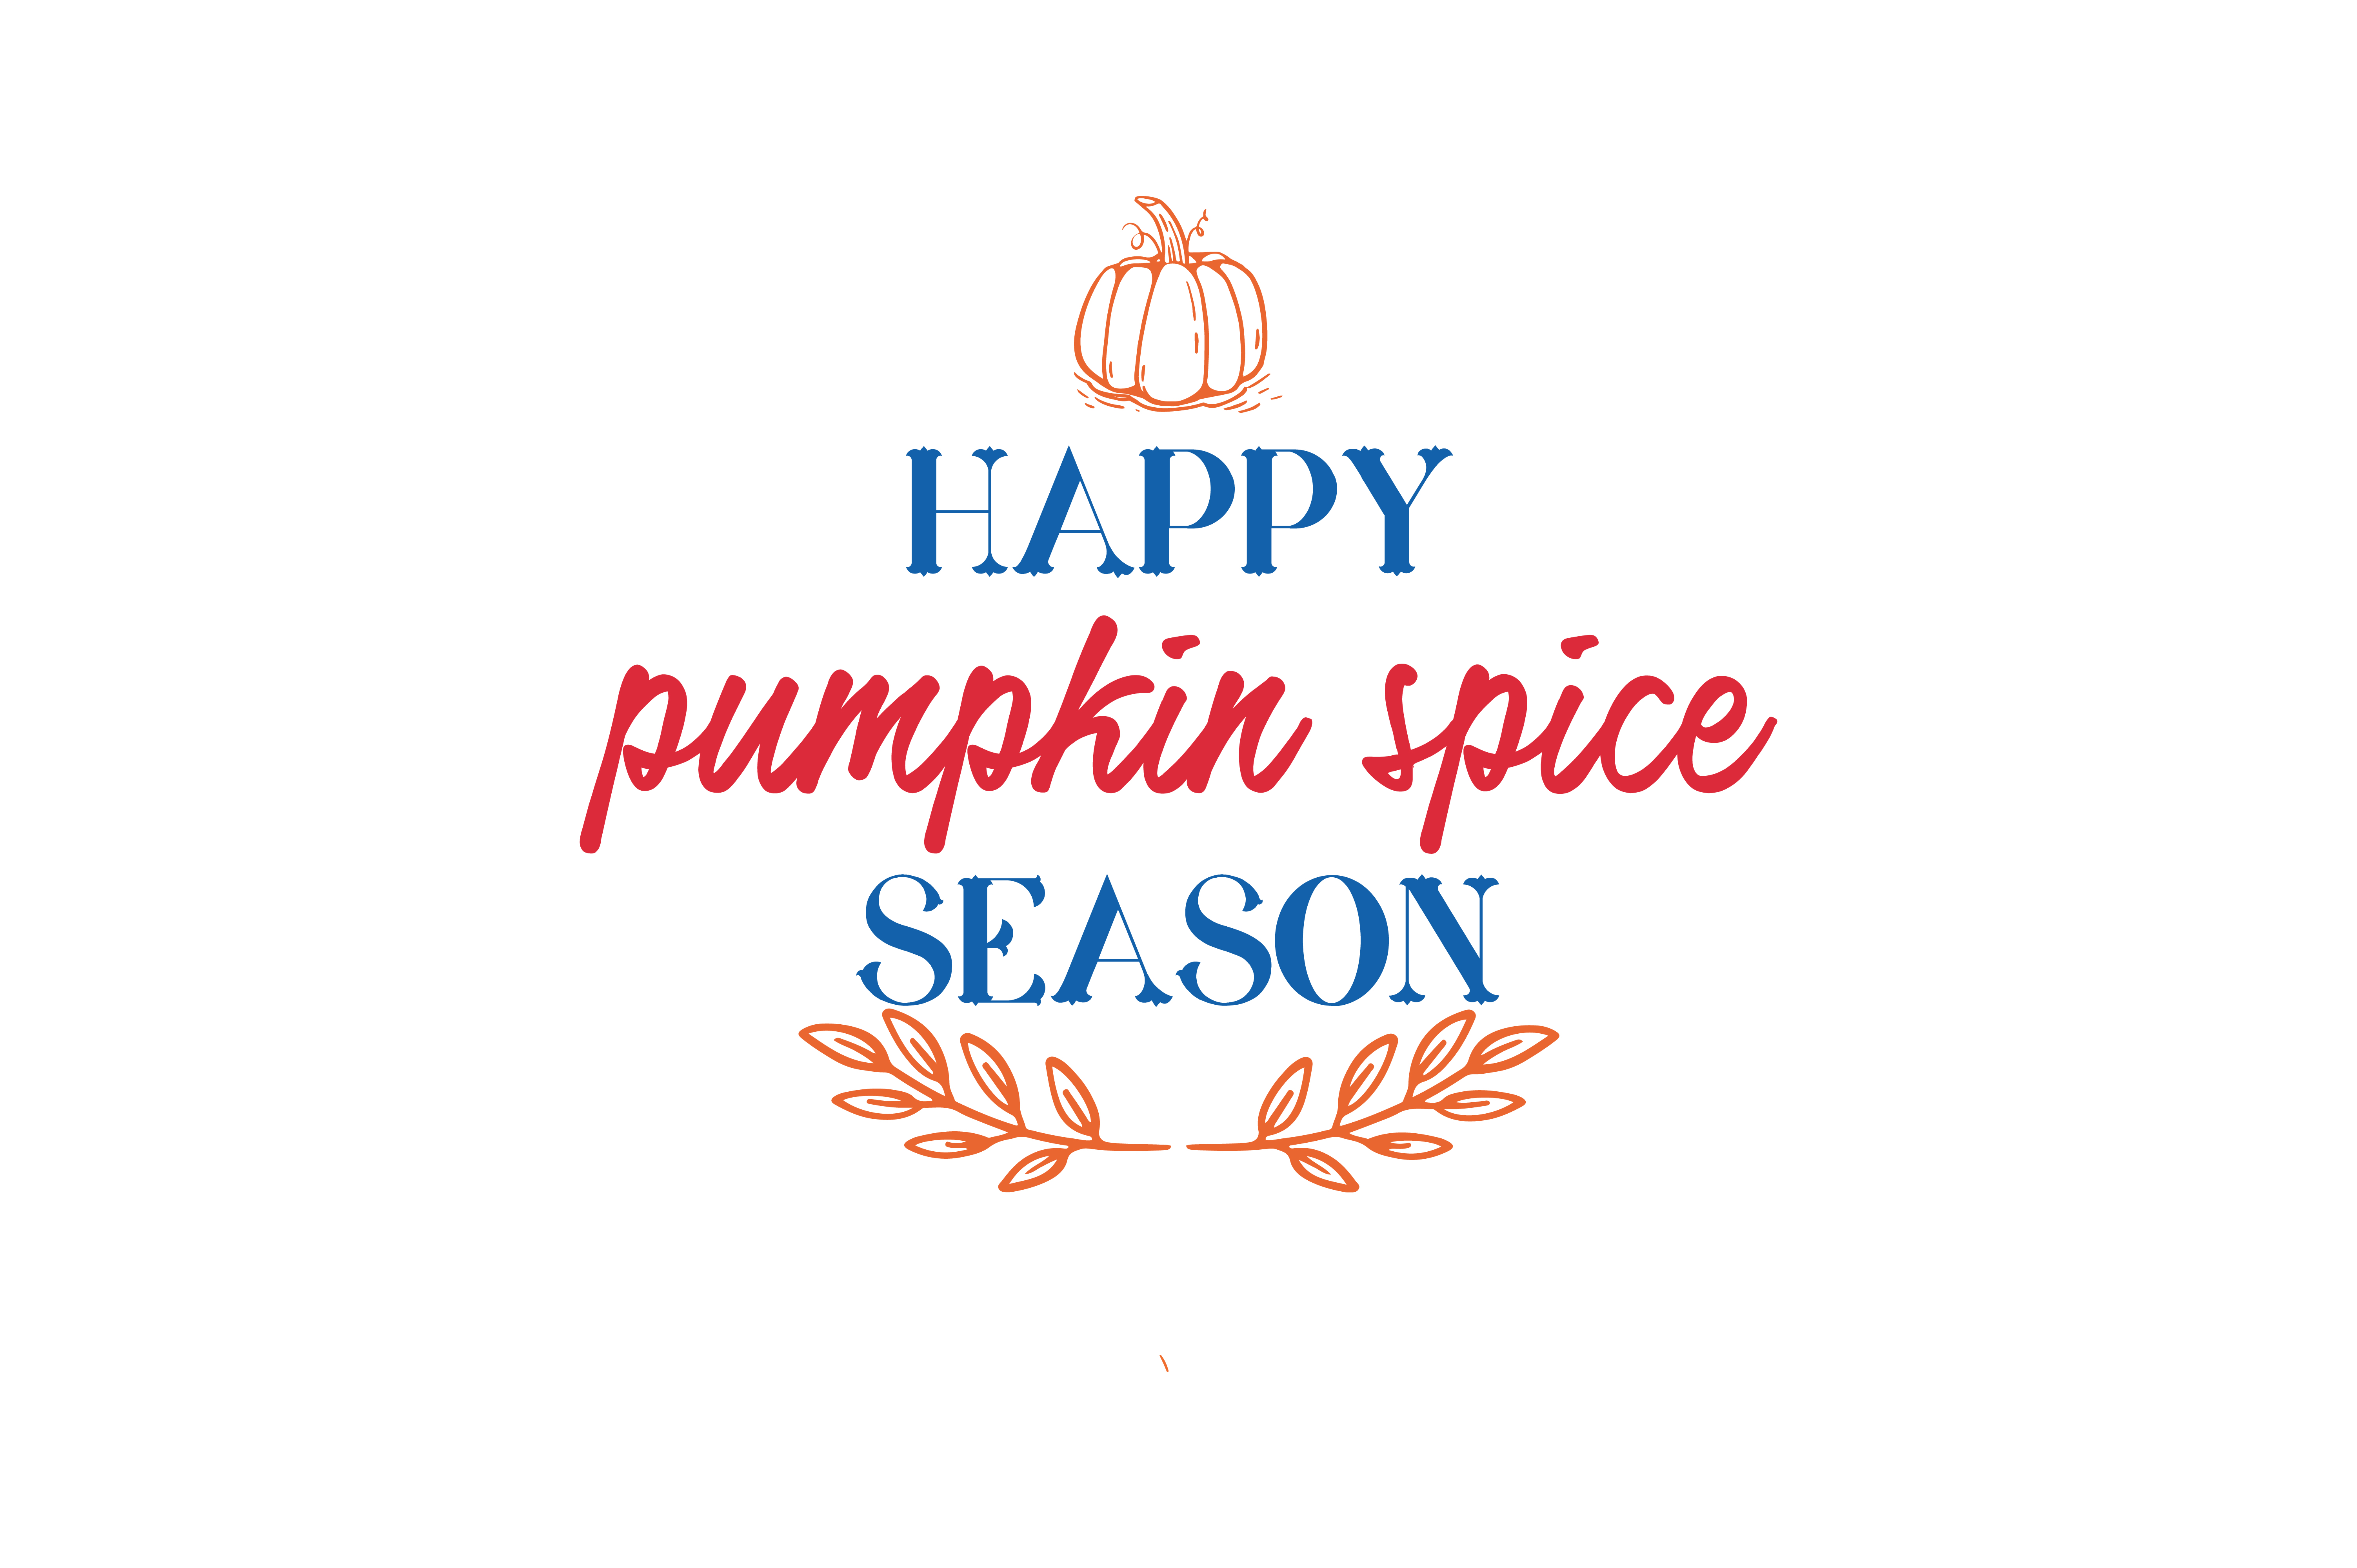 Download Free Happy Pumpkin Spice Season Quote Svg Cut Graphic By Thelucky for Cricut Explore, Silhouette and other cutting machines.